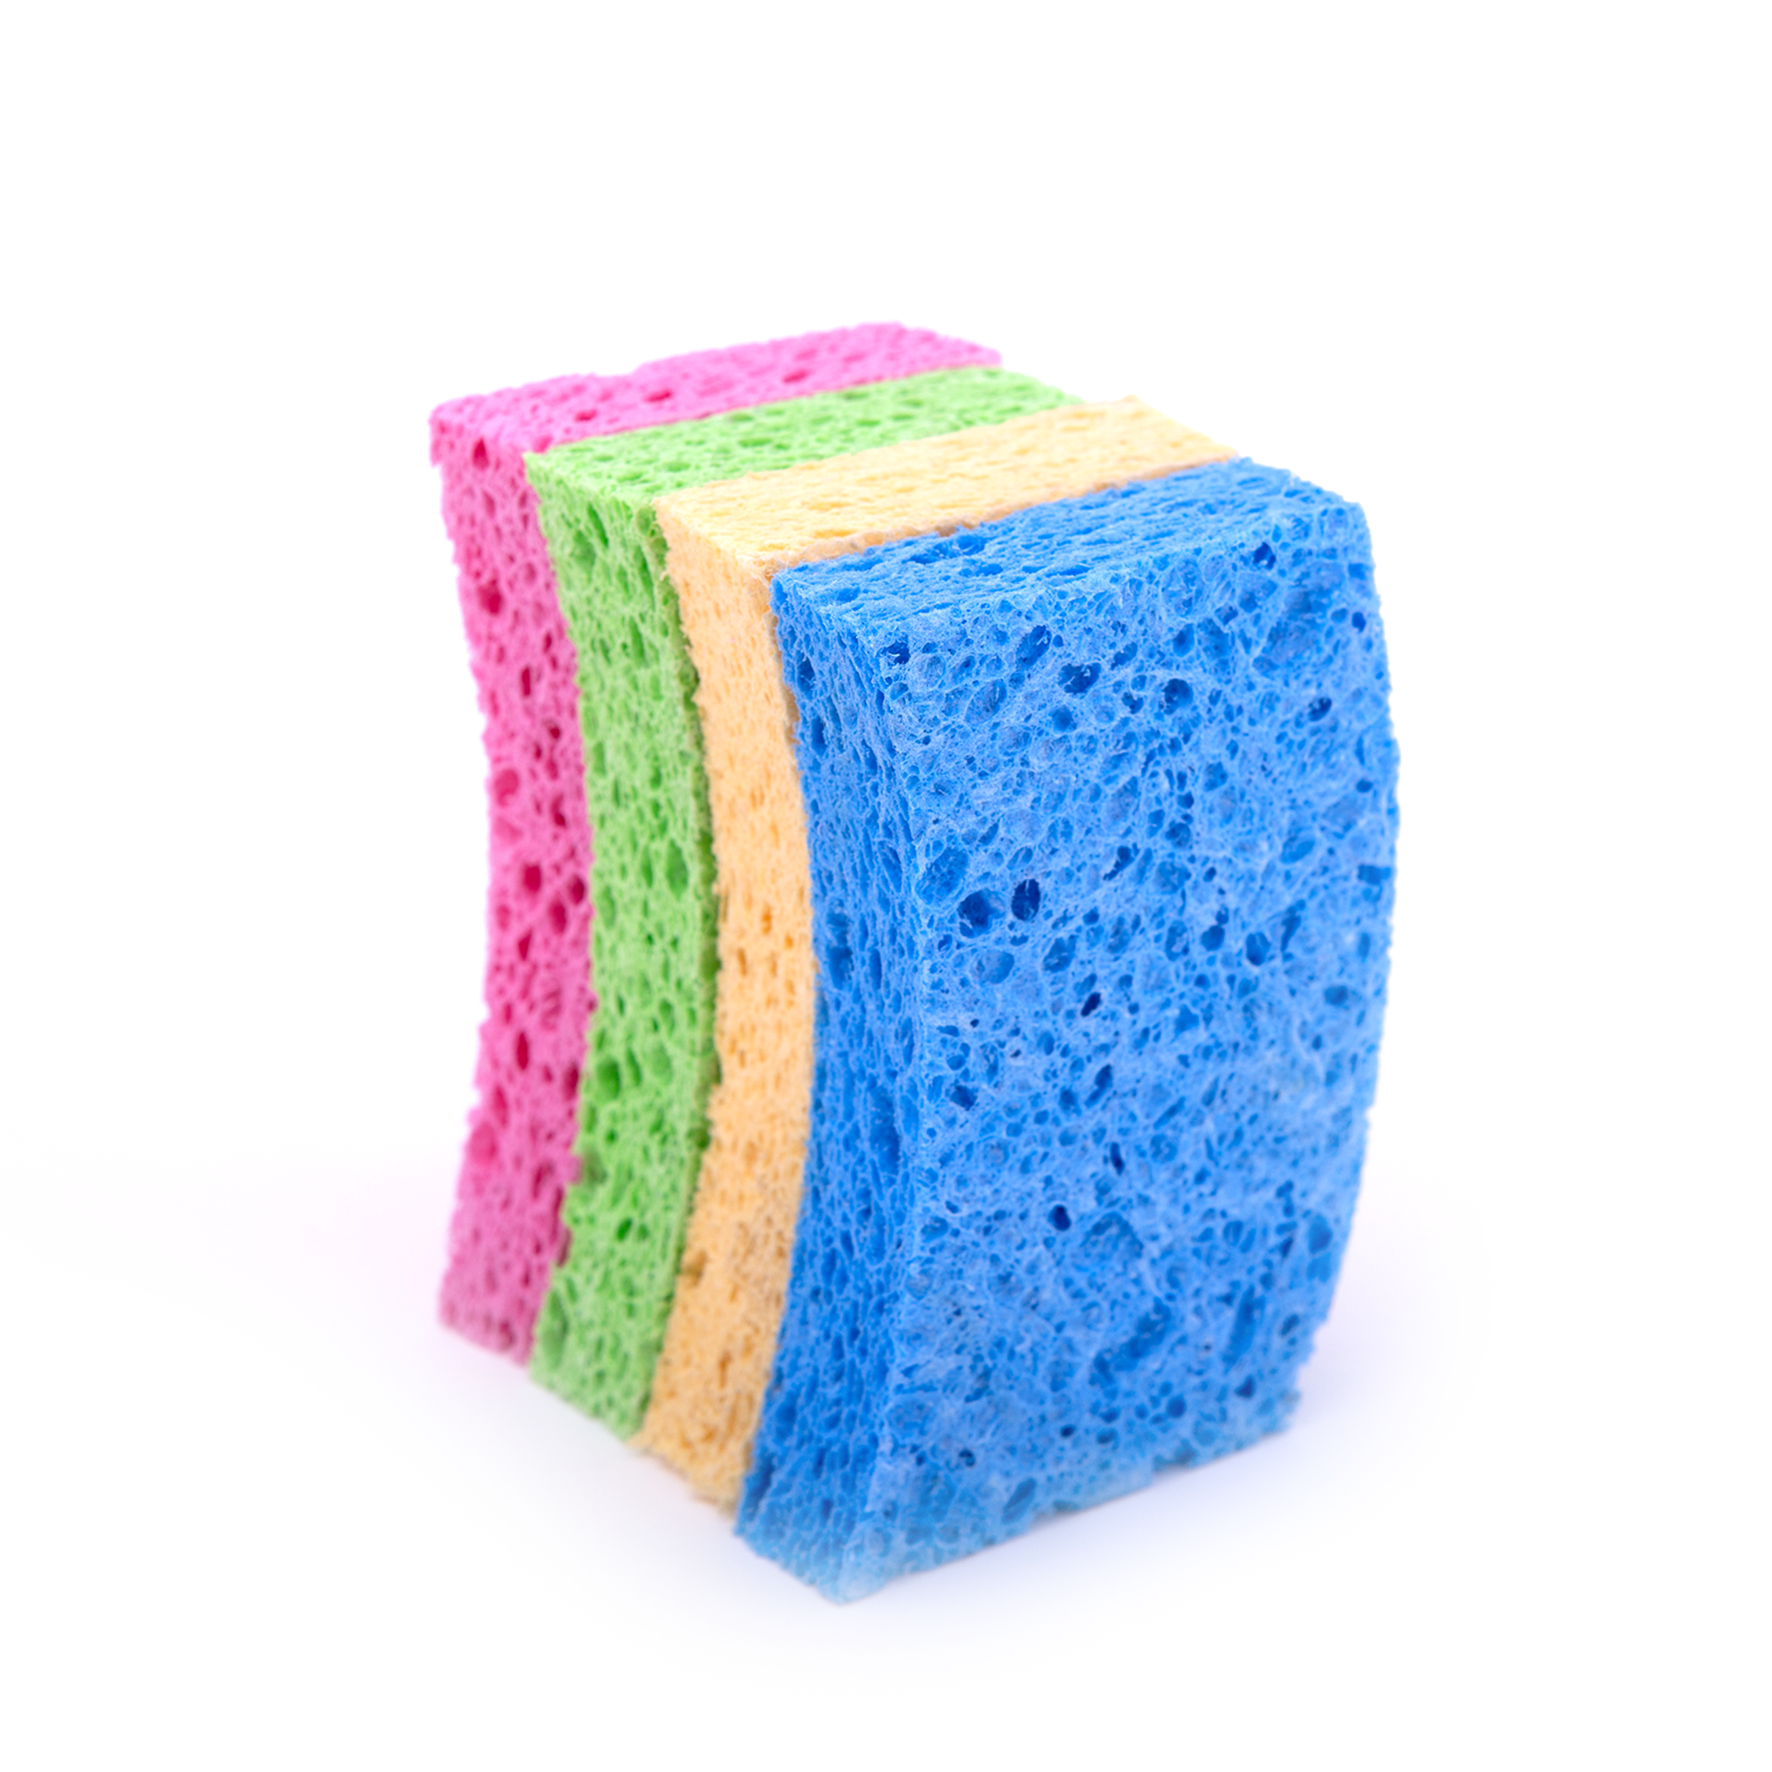 DH-A5-6 High Quality Sponge  Eco-friendly Multi-Purpose Cellulose Sponge